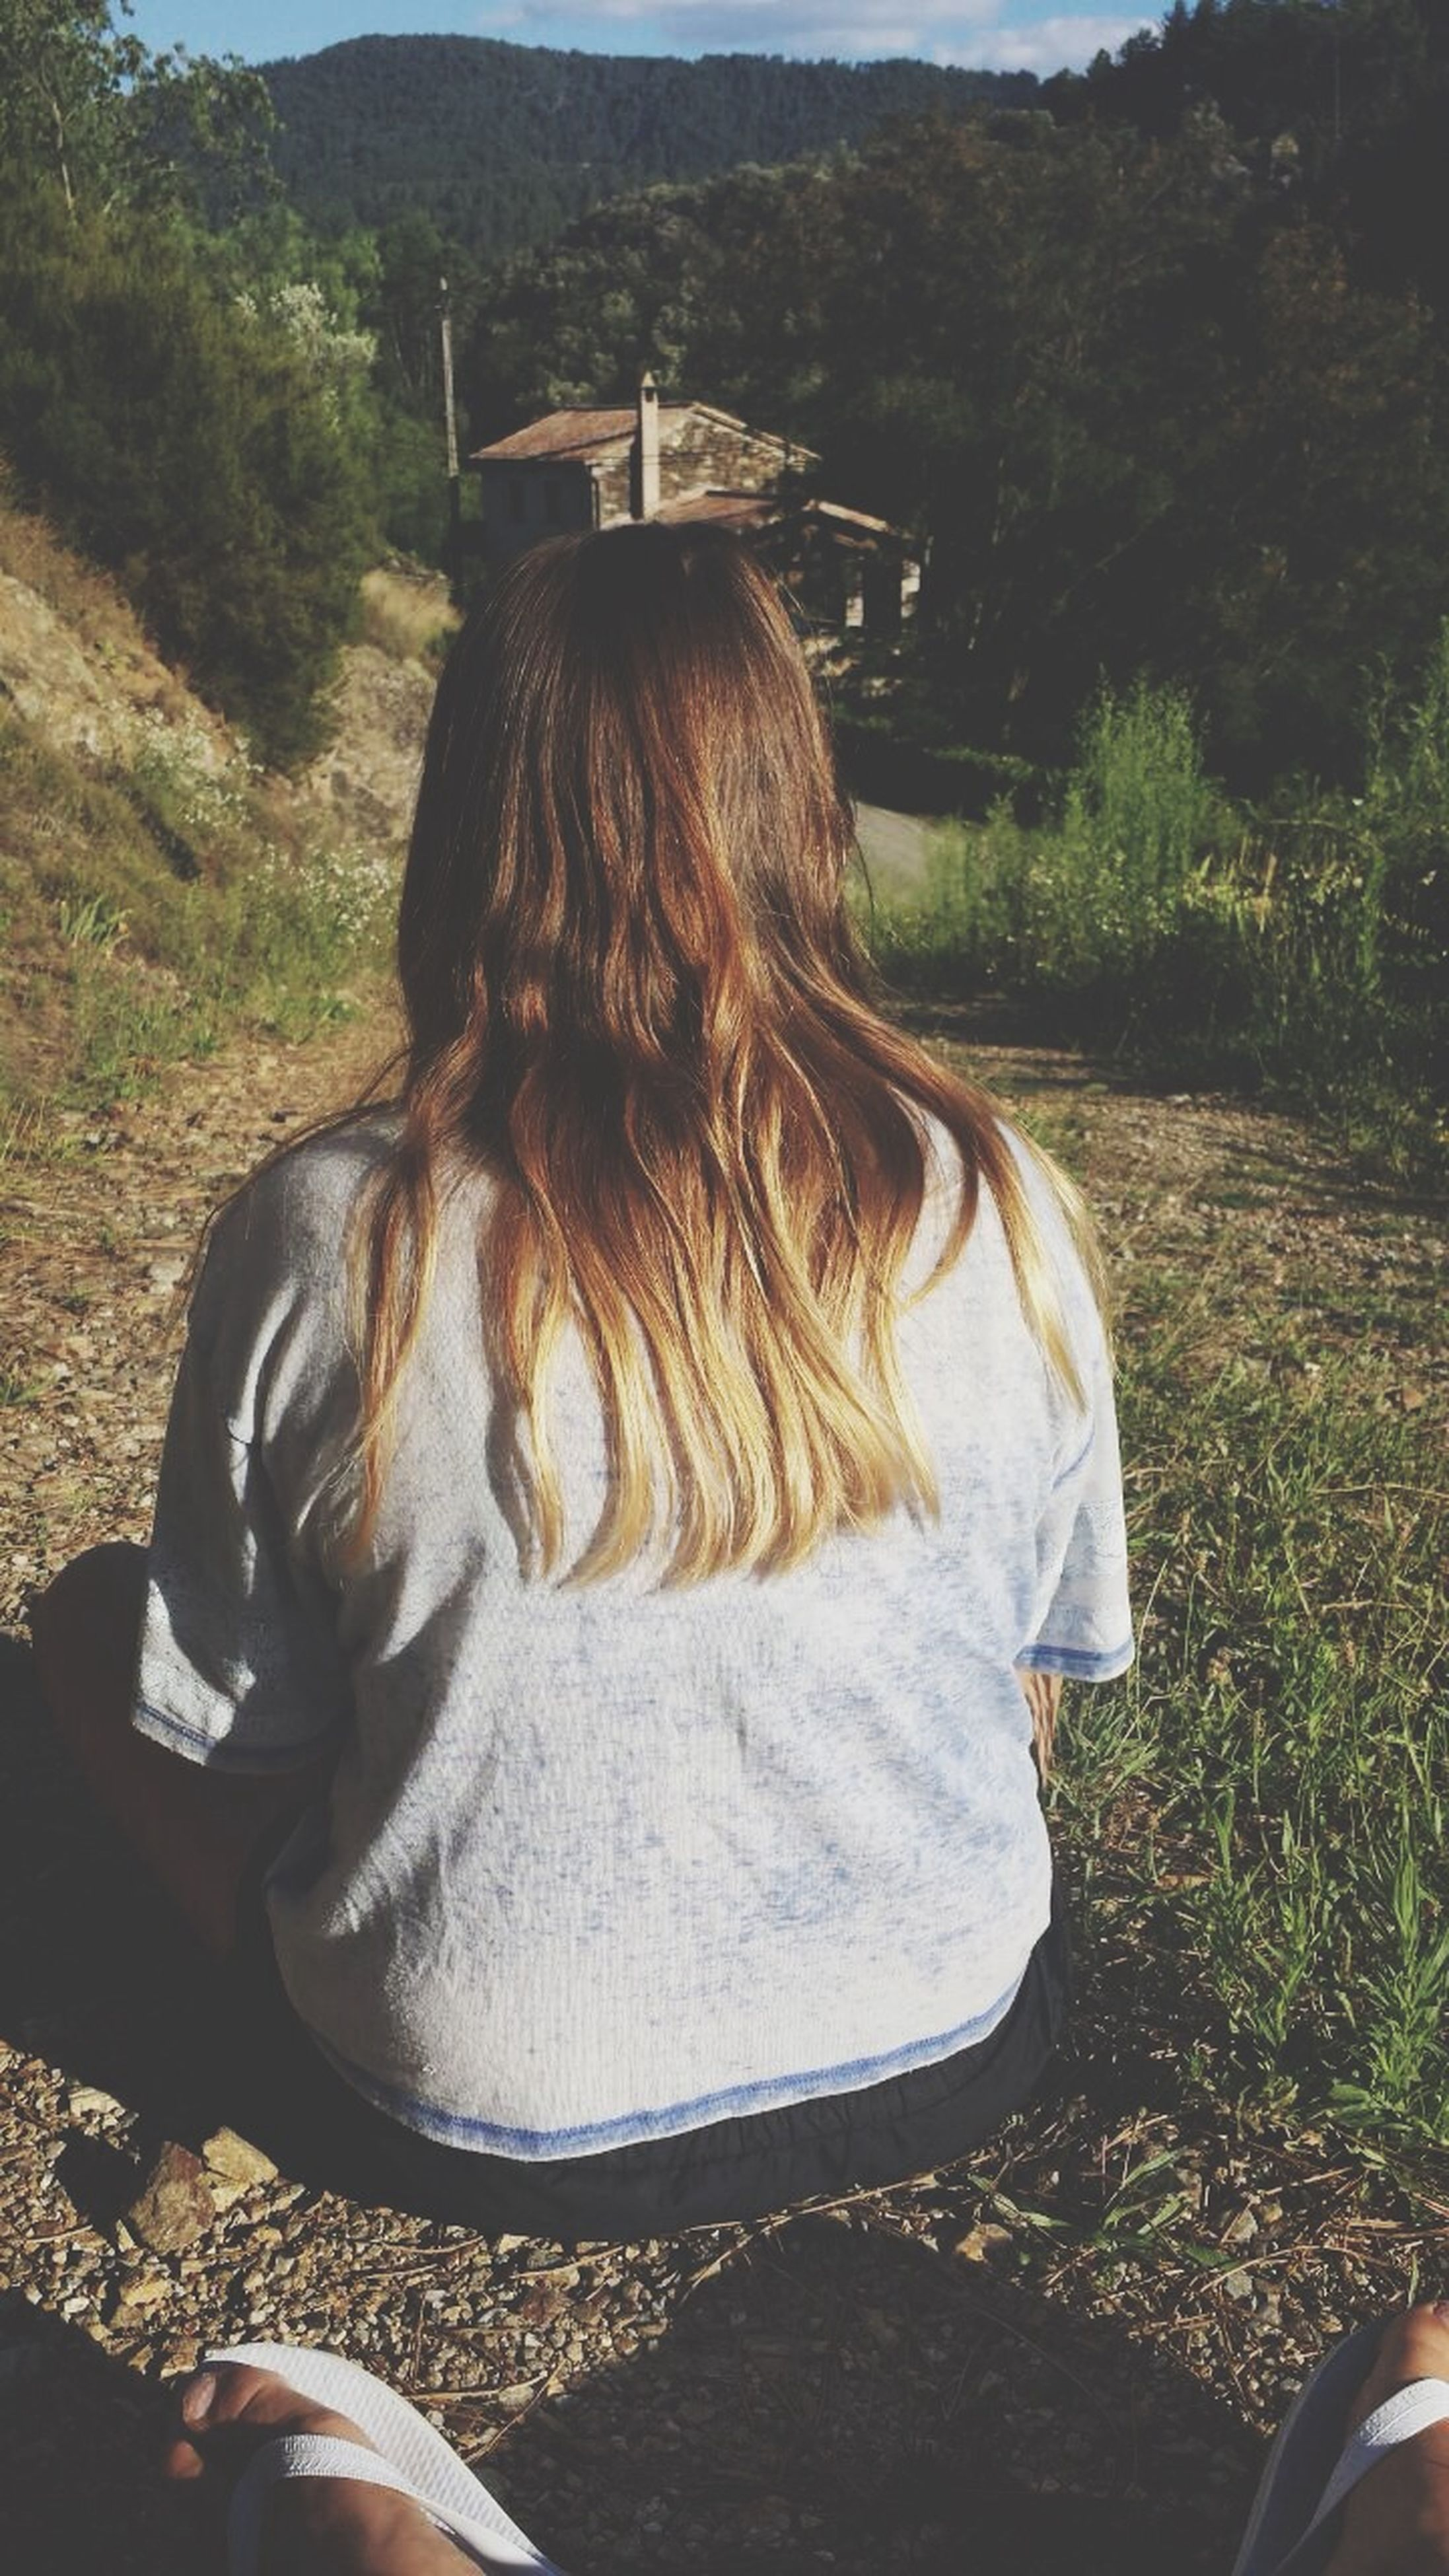 rear view, field, grass, day, outdoors, landscape, person, nature, relaxation, resting, sunlight, lifestyles, leisure activity, long hair, casual clothing, tranquility, sitting, plant